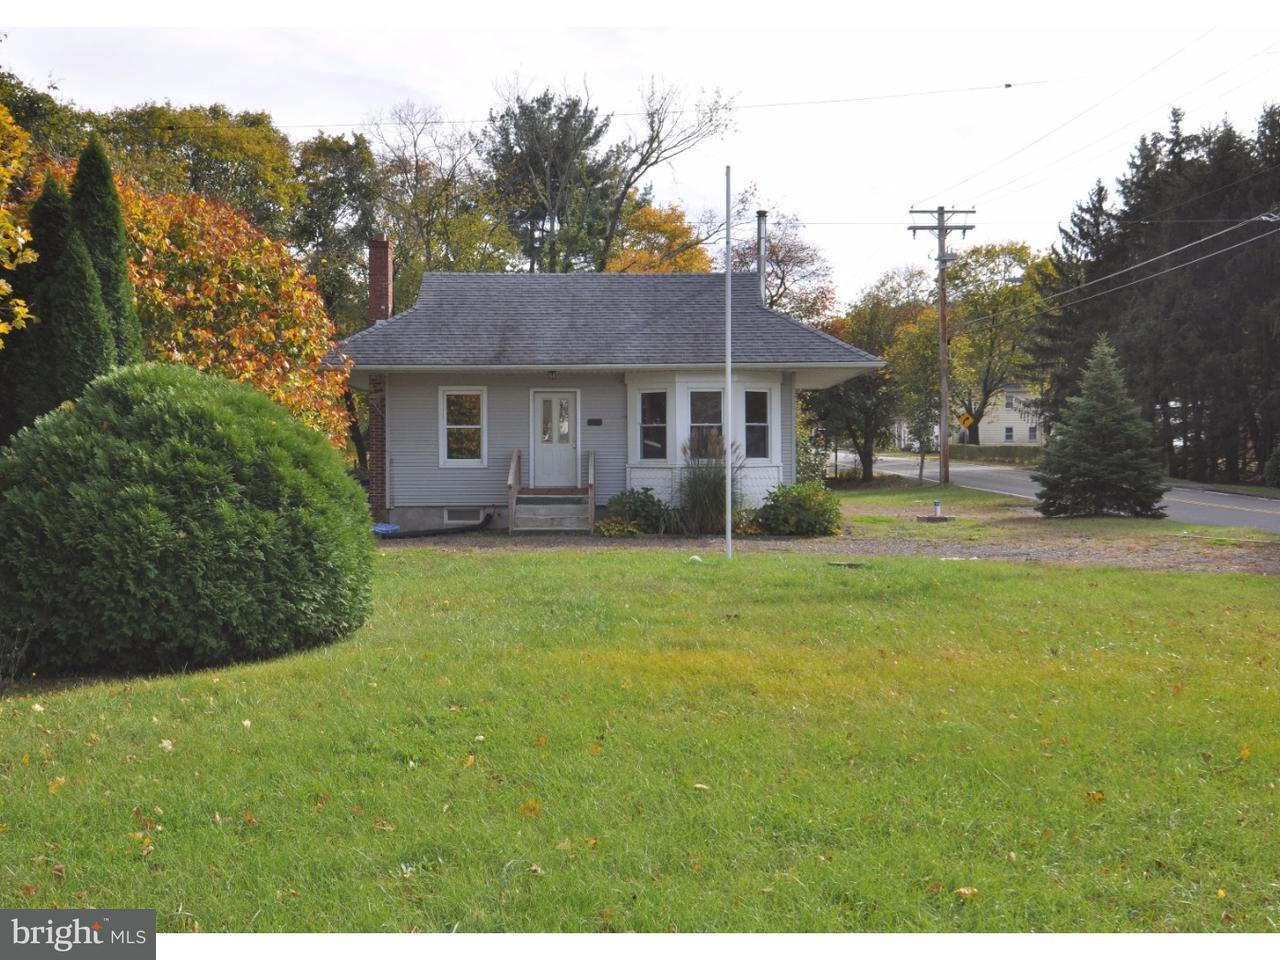 Single Family Home for Sale at 394 MAIN Street Juliustown, New Jersey 08042 United States